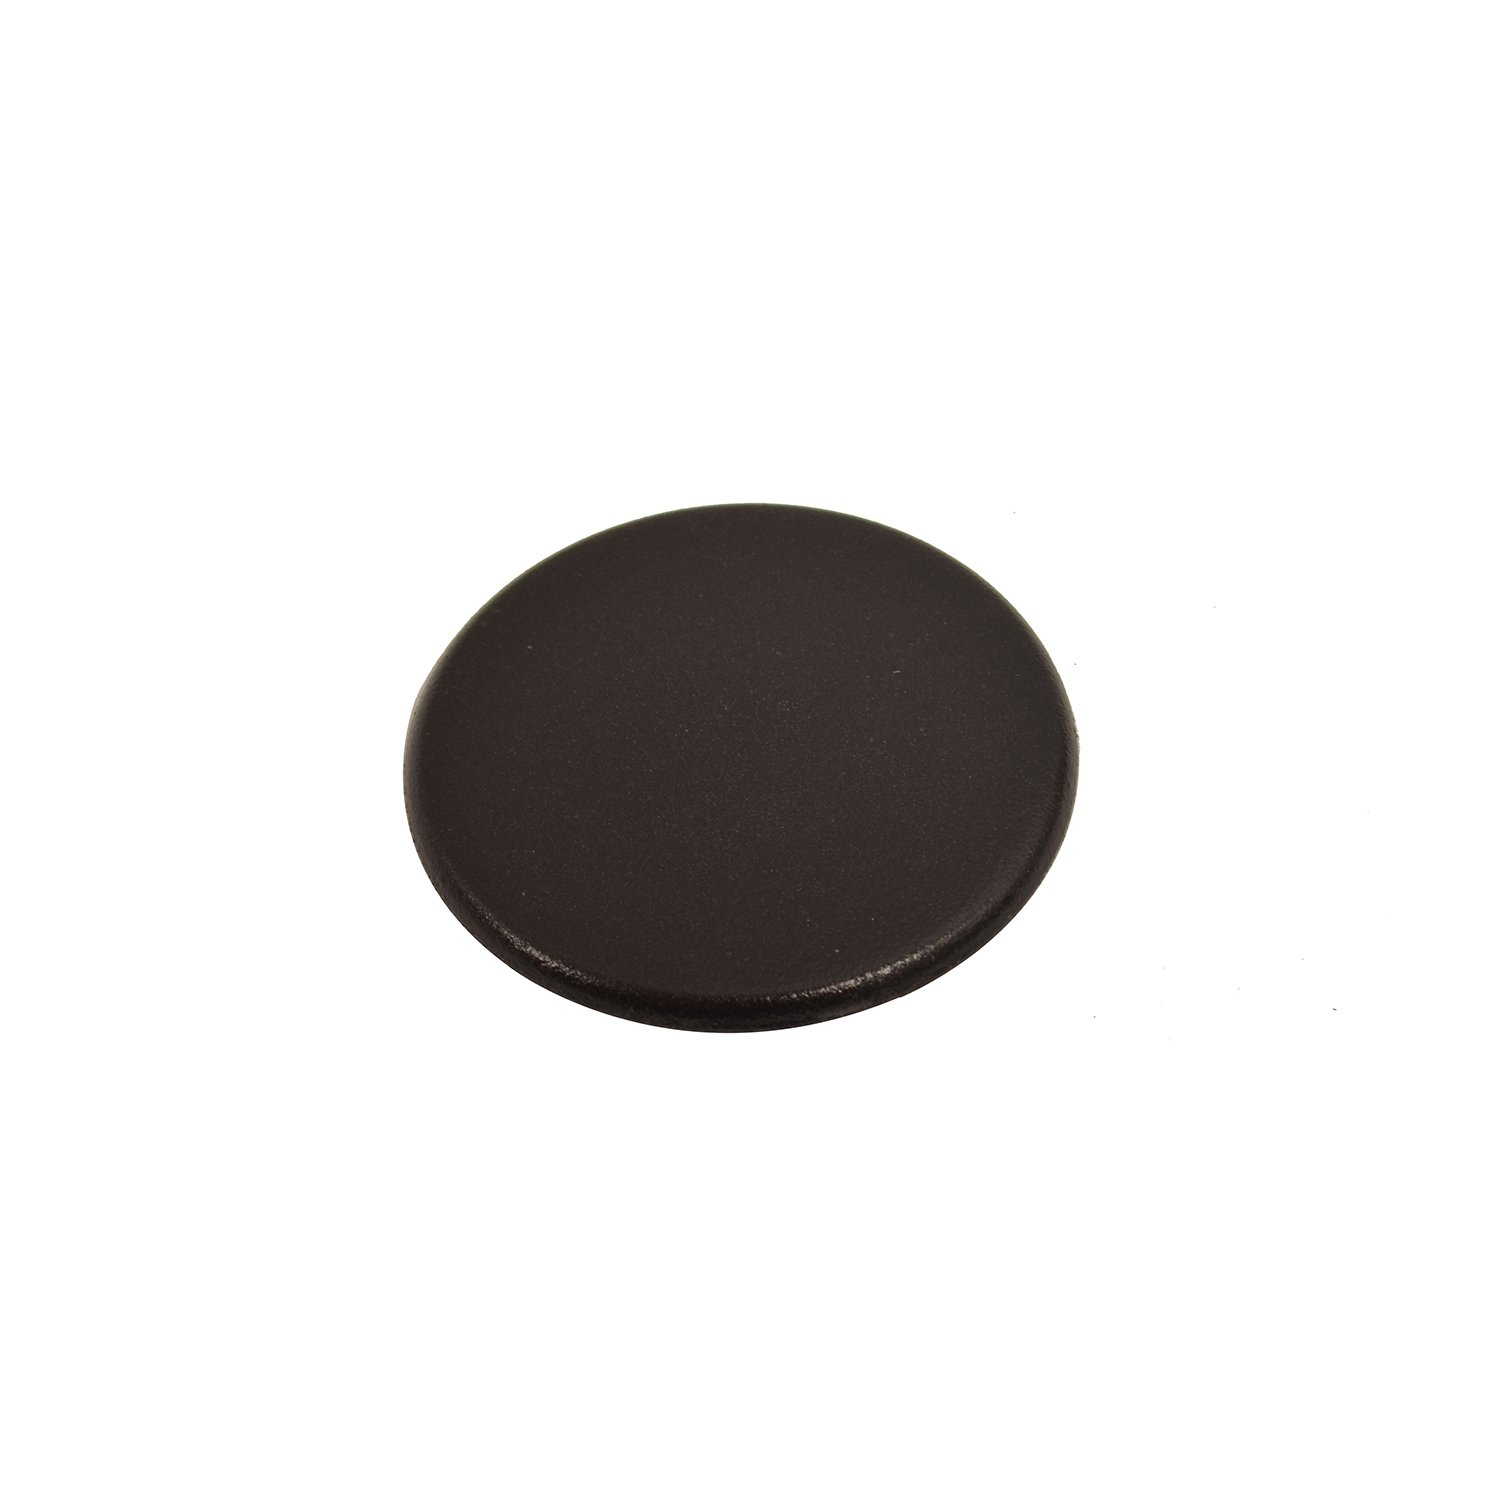 Genuine Hotpoint Spare Parts Hob Burner Cap - Small C00064918